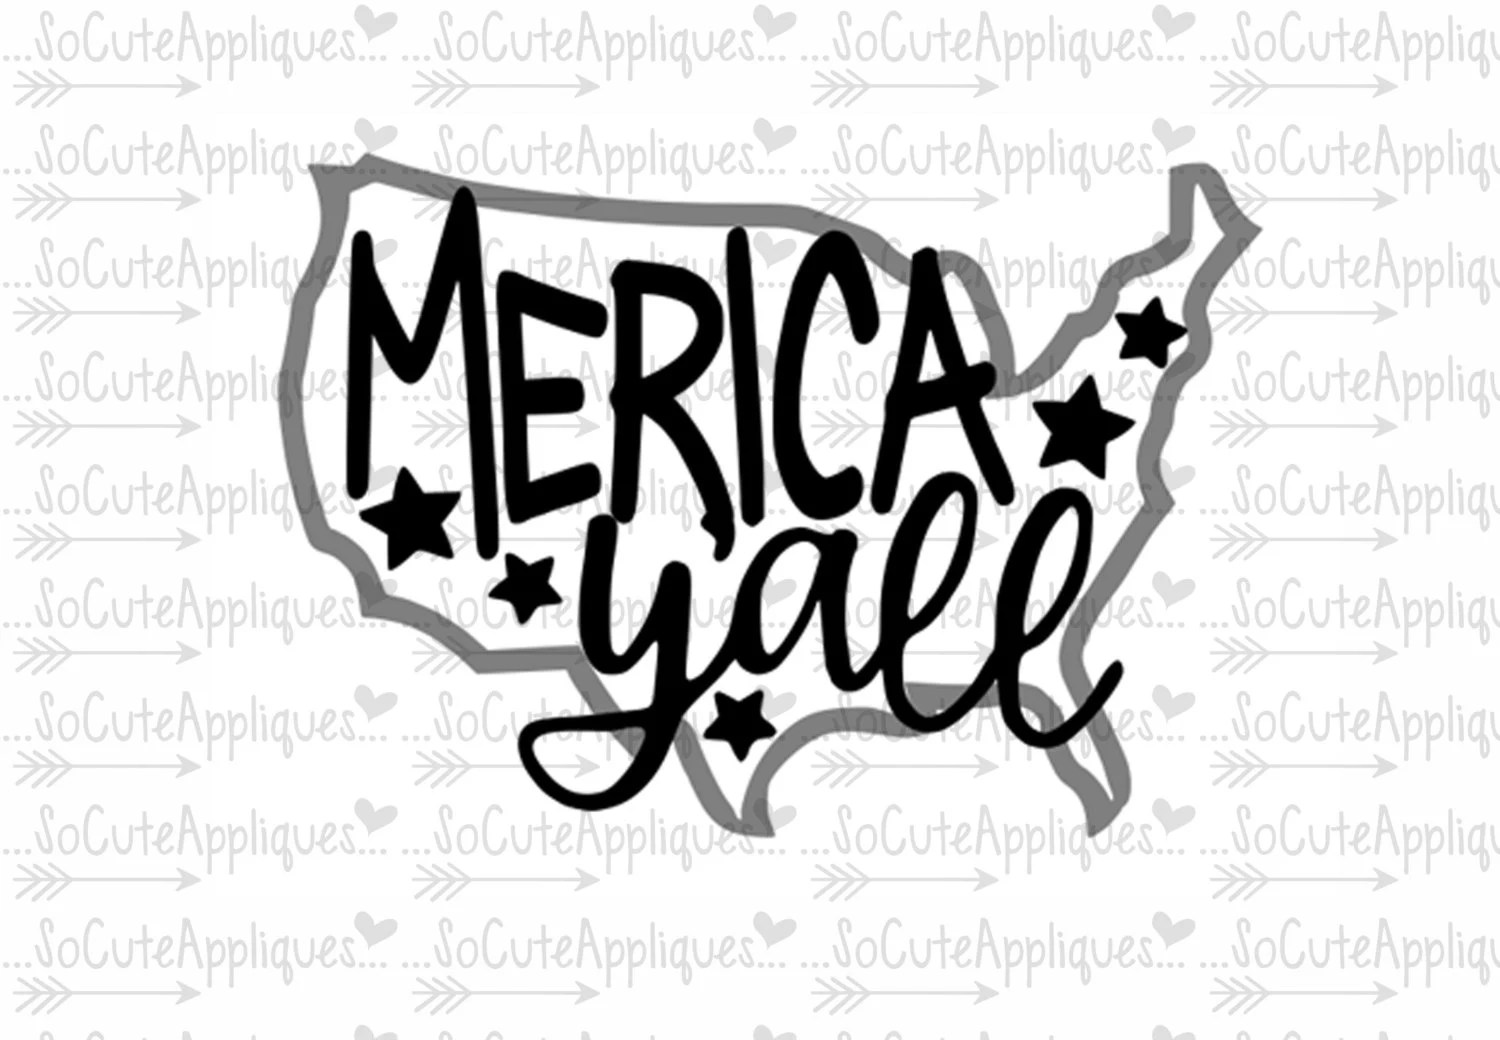 4th Of July Svg Merica Yall Svg Socuteappliques Freedom